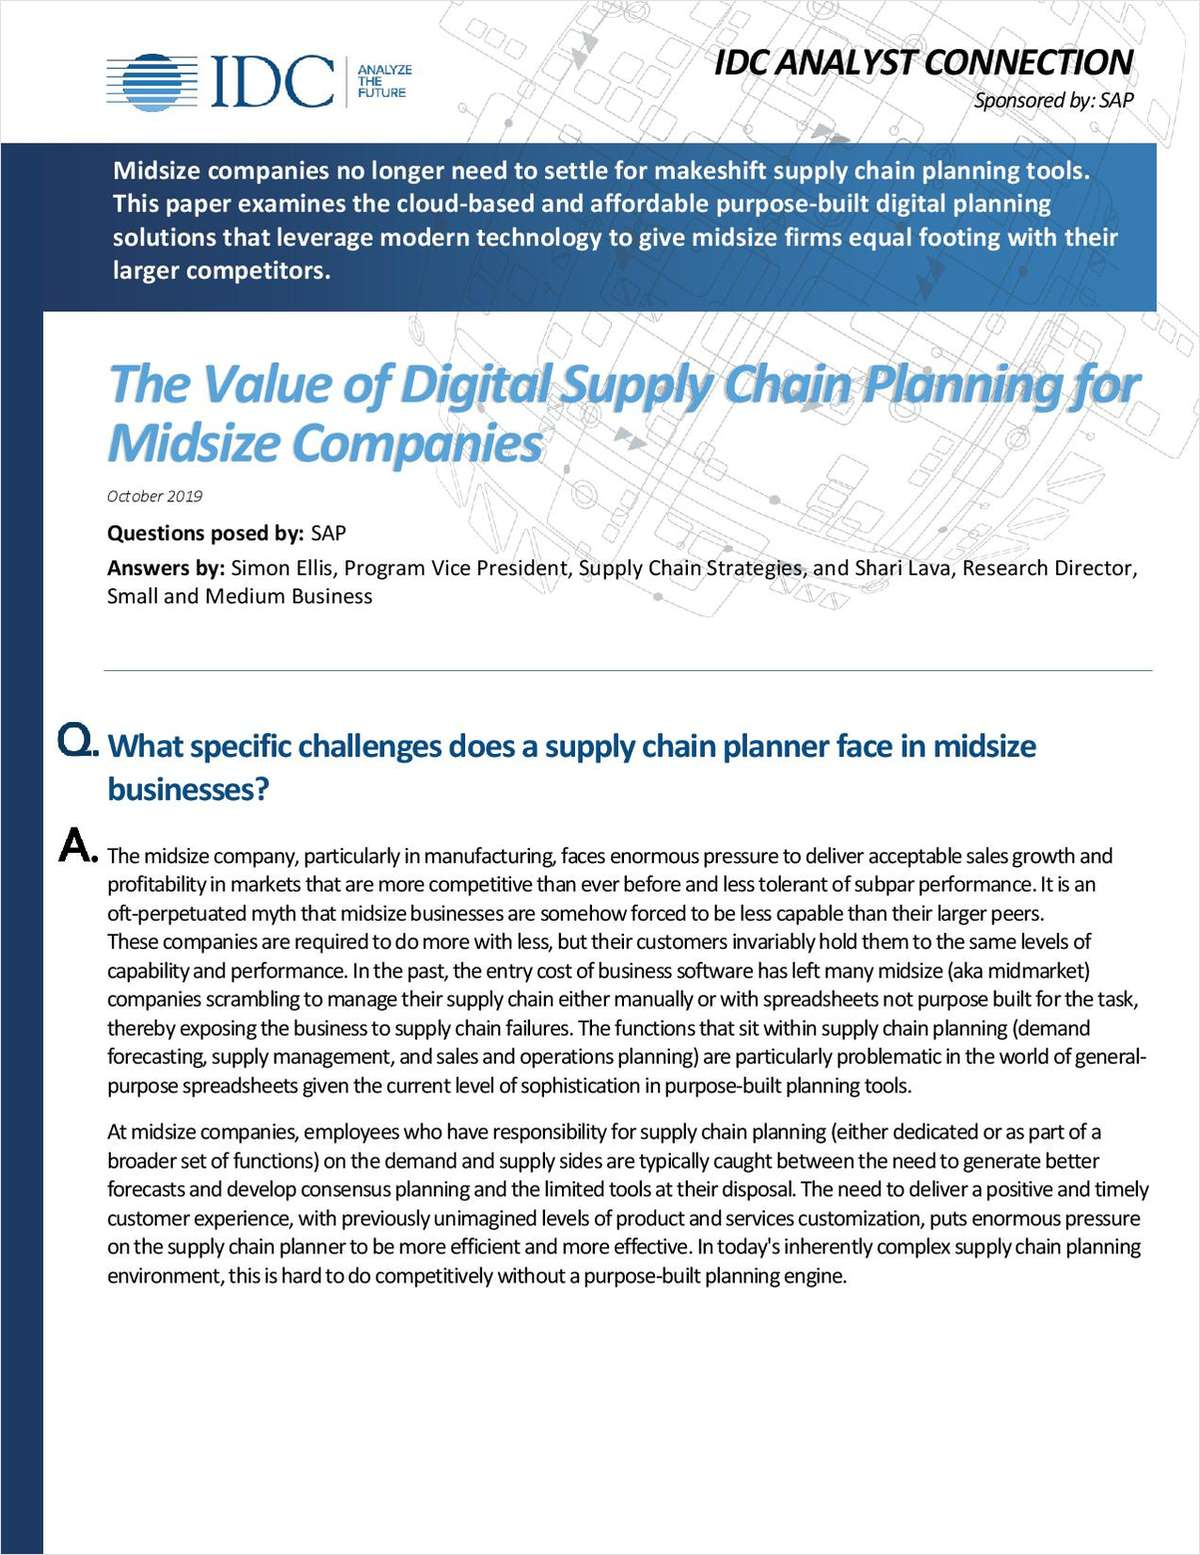 The Value of Digital Supply Chain Planning for Midsize Companies